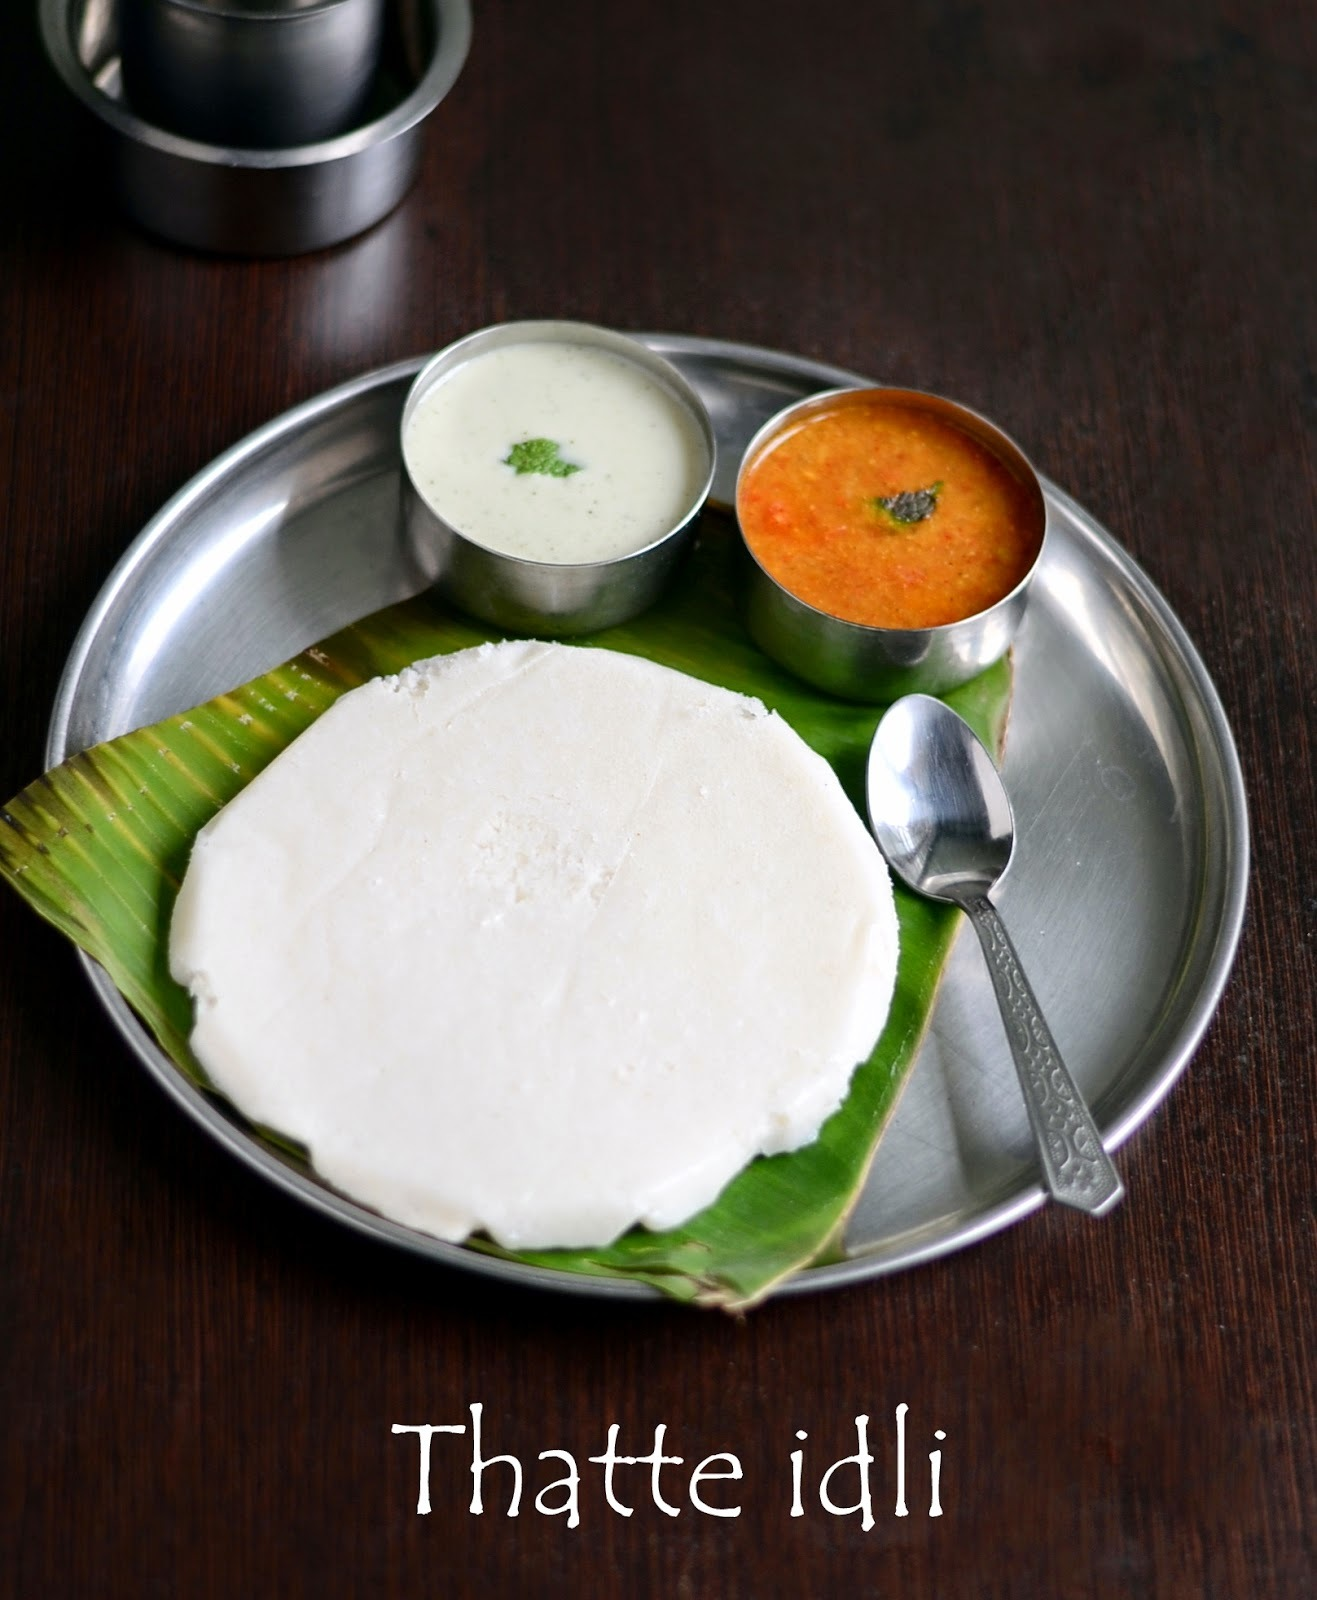 THATTE IDLI/TATTE IDLI RECIPE-KARNATAKA RECIPES